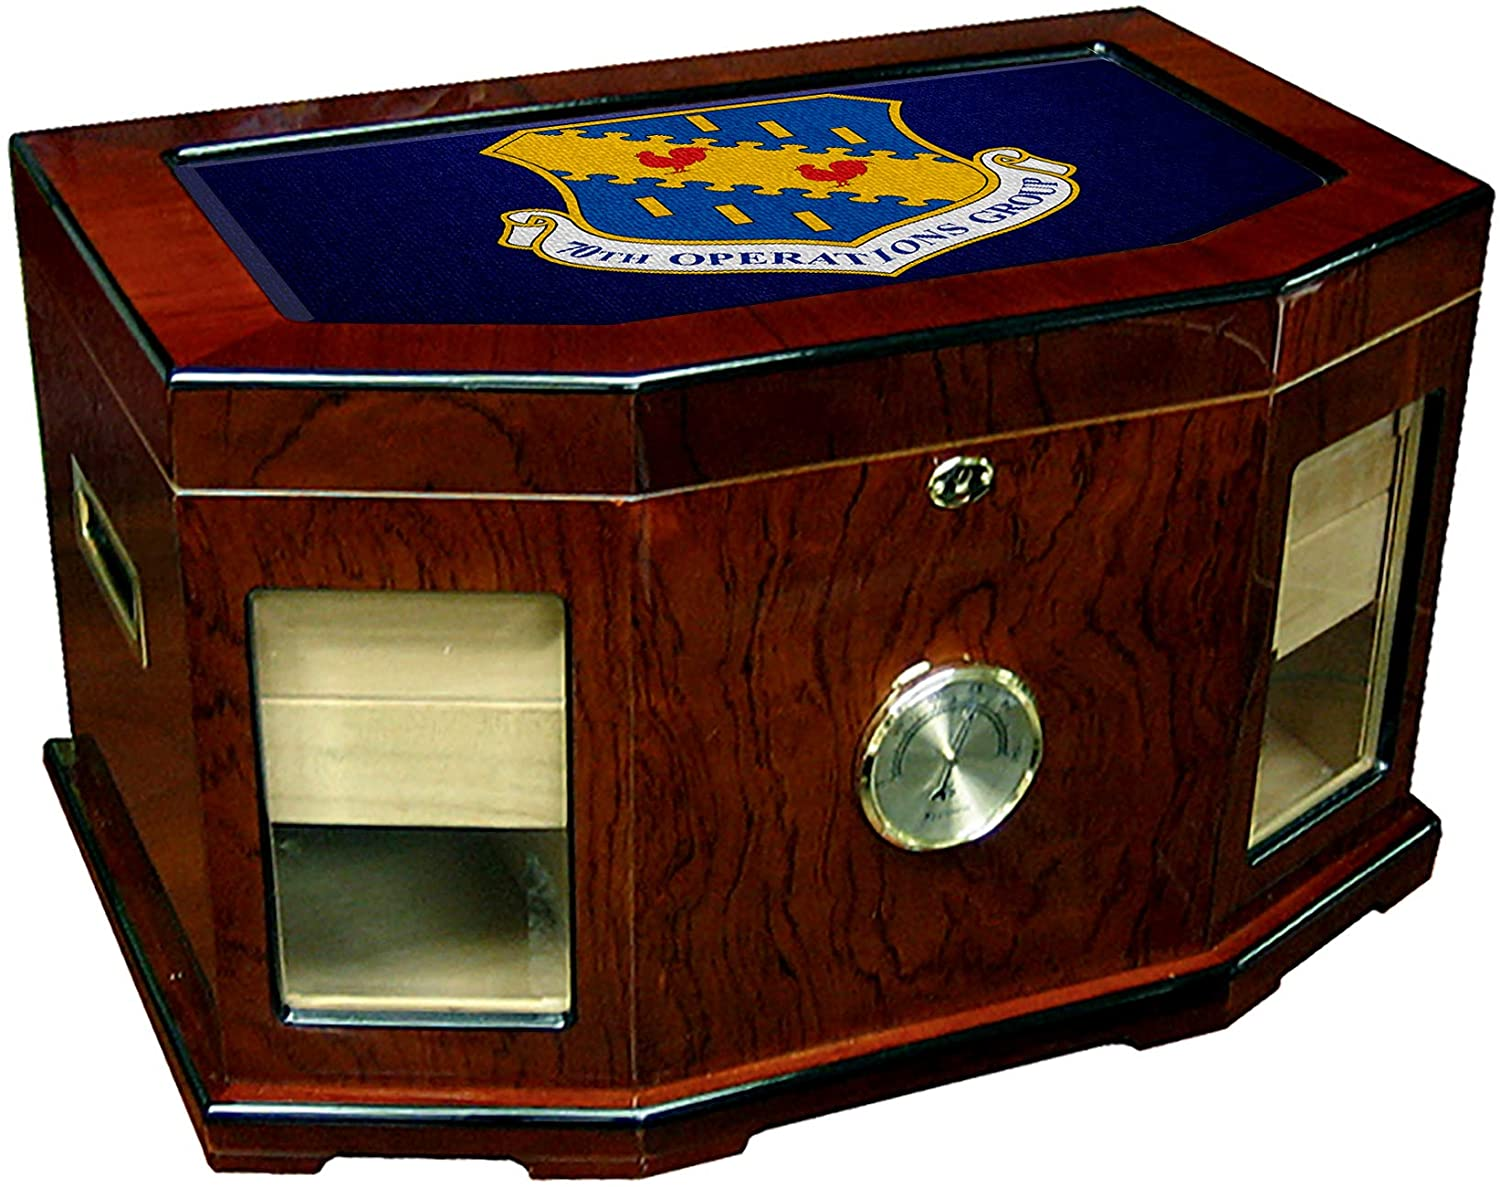 Large Premium Desktop Humidor - Glass Top -US Air Force 70th Operations Group